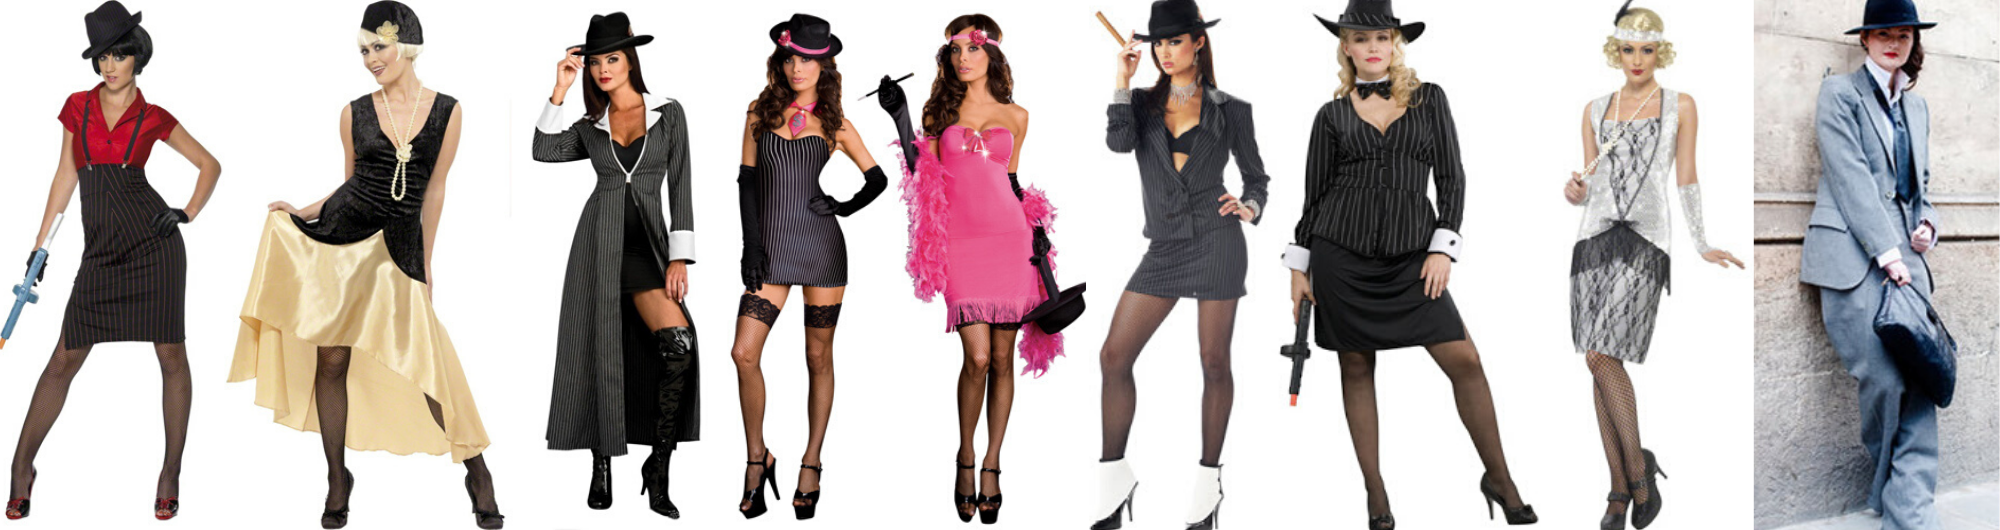 chicago style clothes - How to dress for a party?